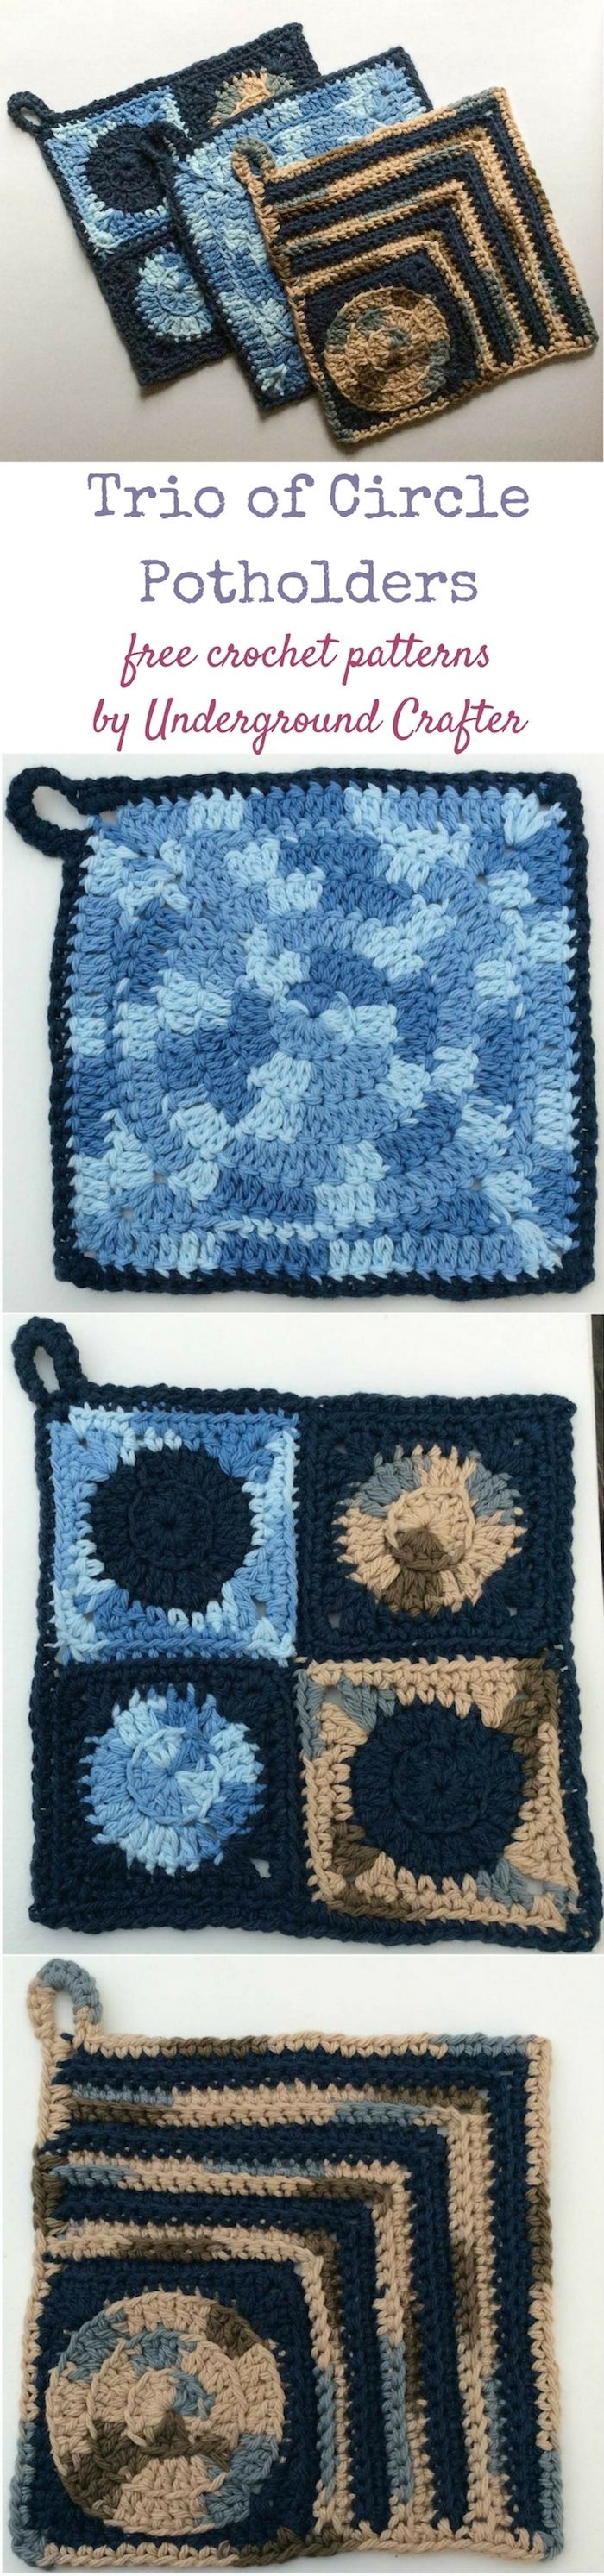 Free crochet patterns: Trio of Circle Potholders by Underground ...